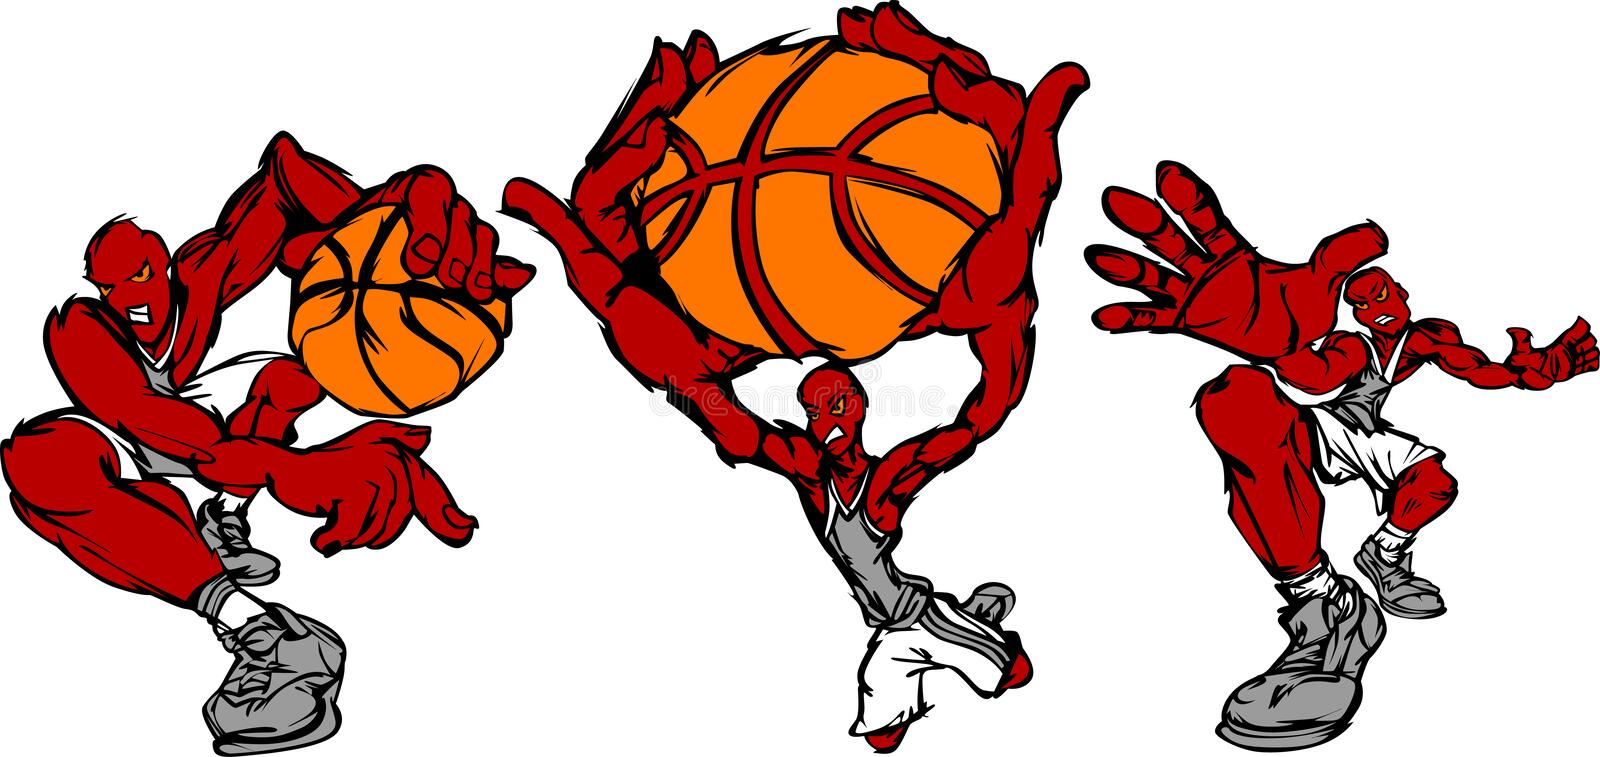 Poses d'action de joueur de basket illustration stock